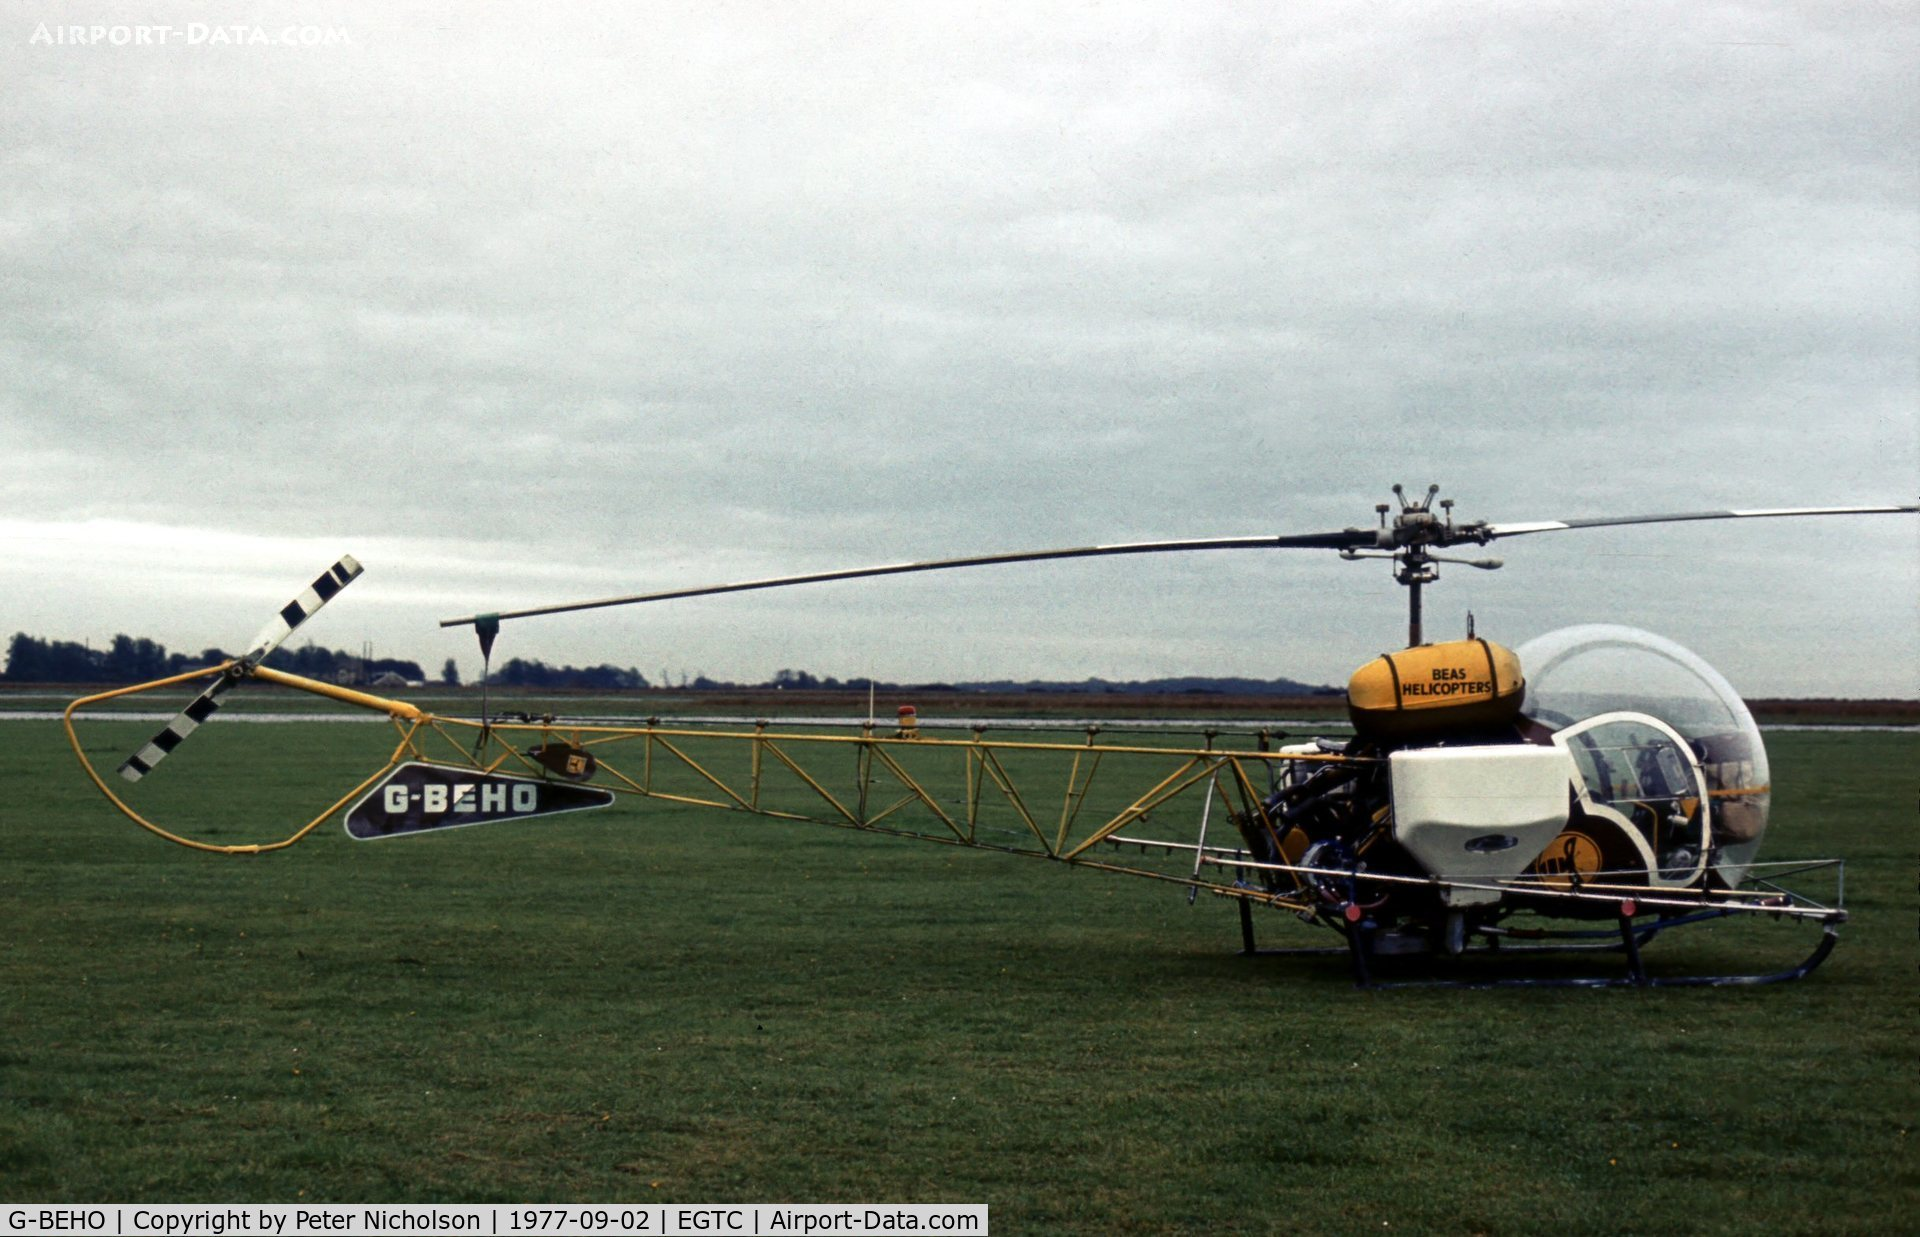 G-BEHO, 1966 Westland Bell 47G-3B-1 C/N 104, This Bell 47G of BEAS Helicopters was present at the 1977 Cranfield Business & Light Aviation Show.